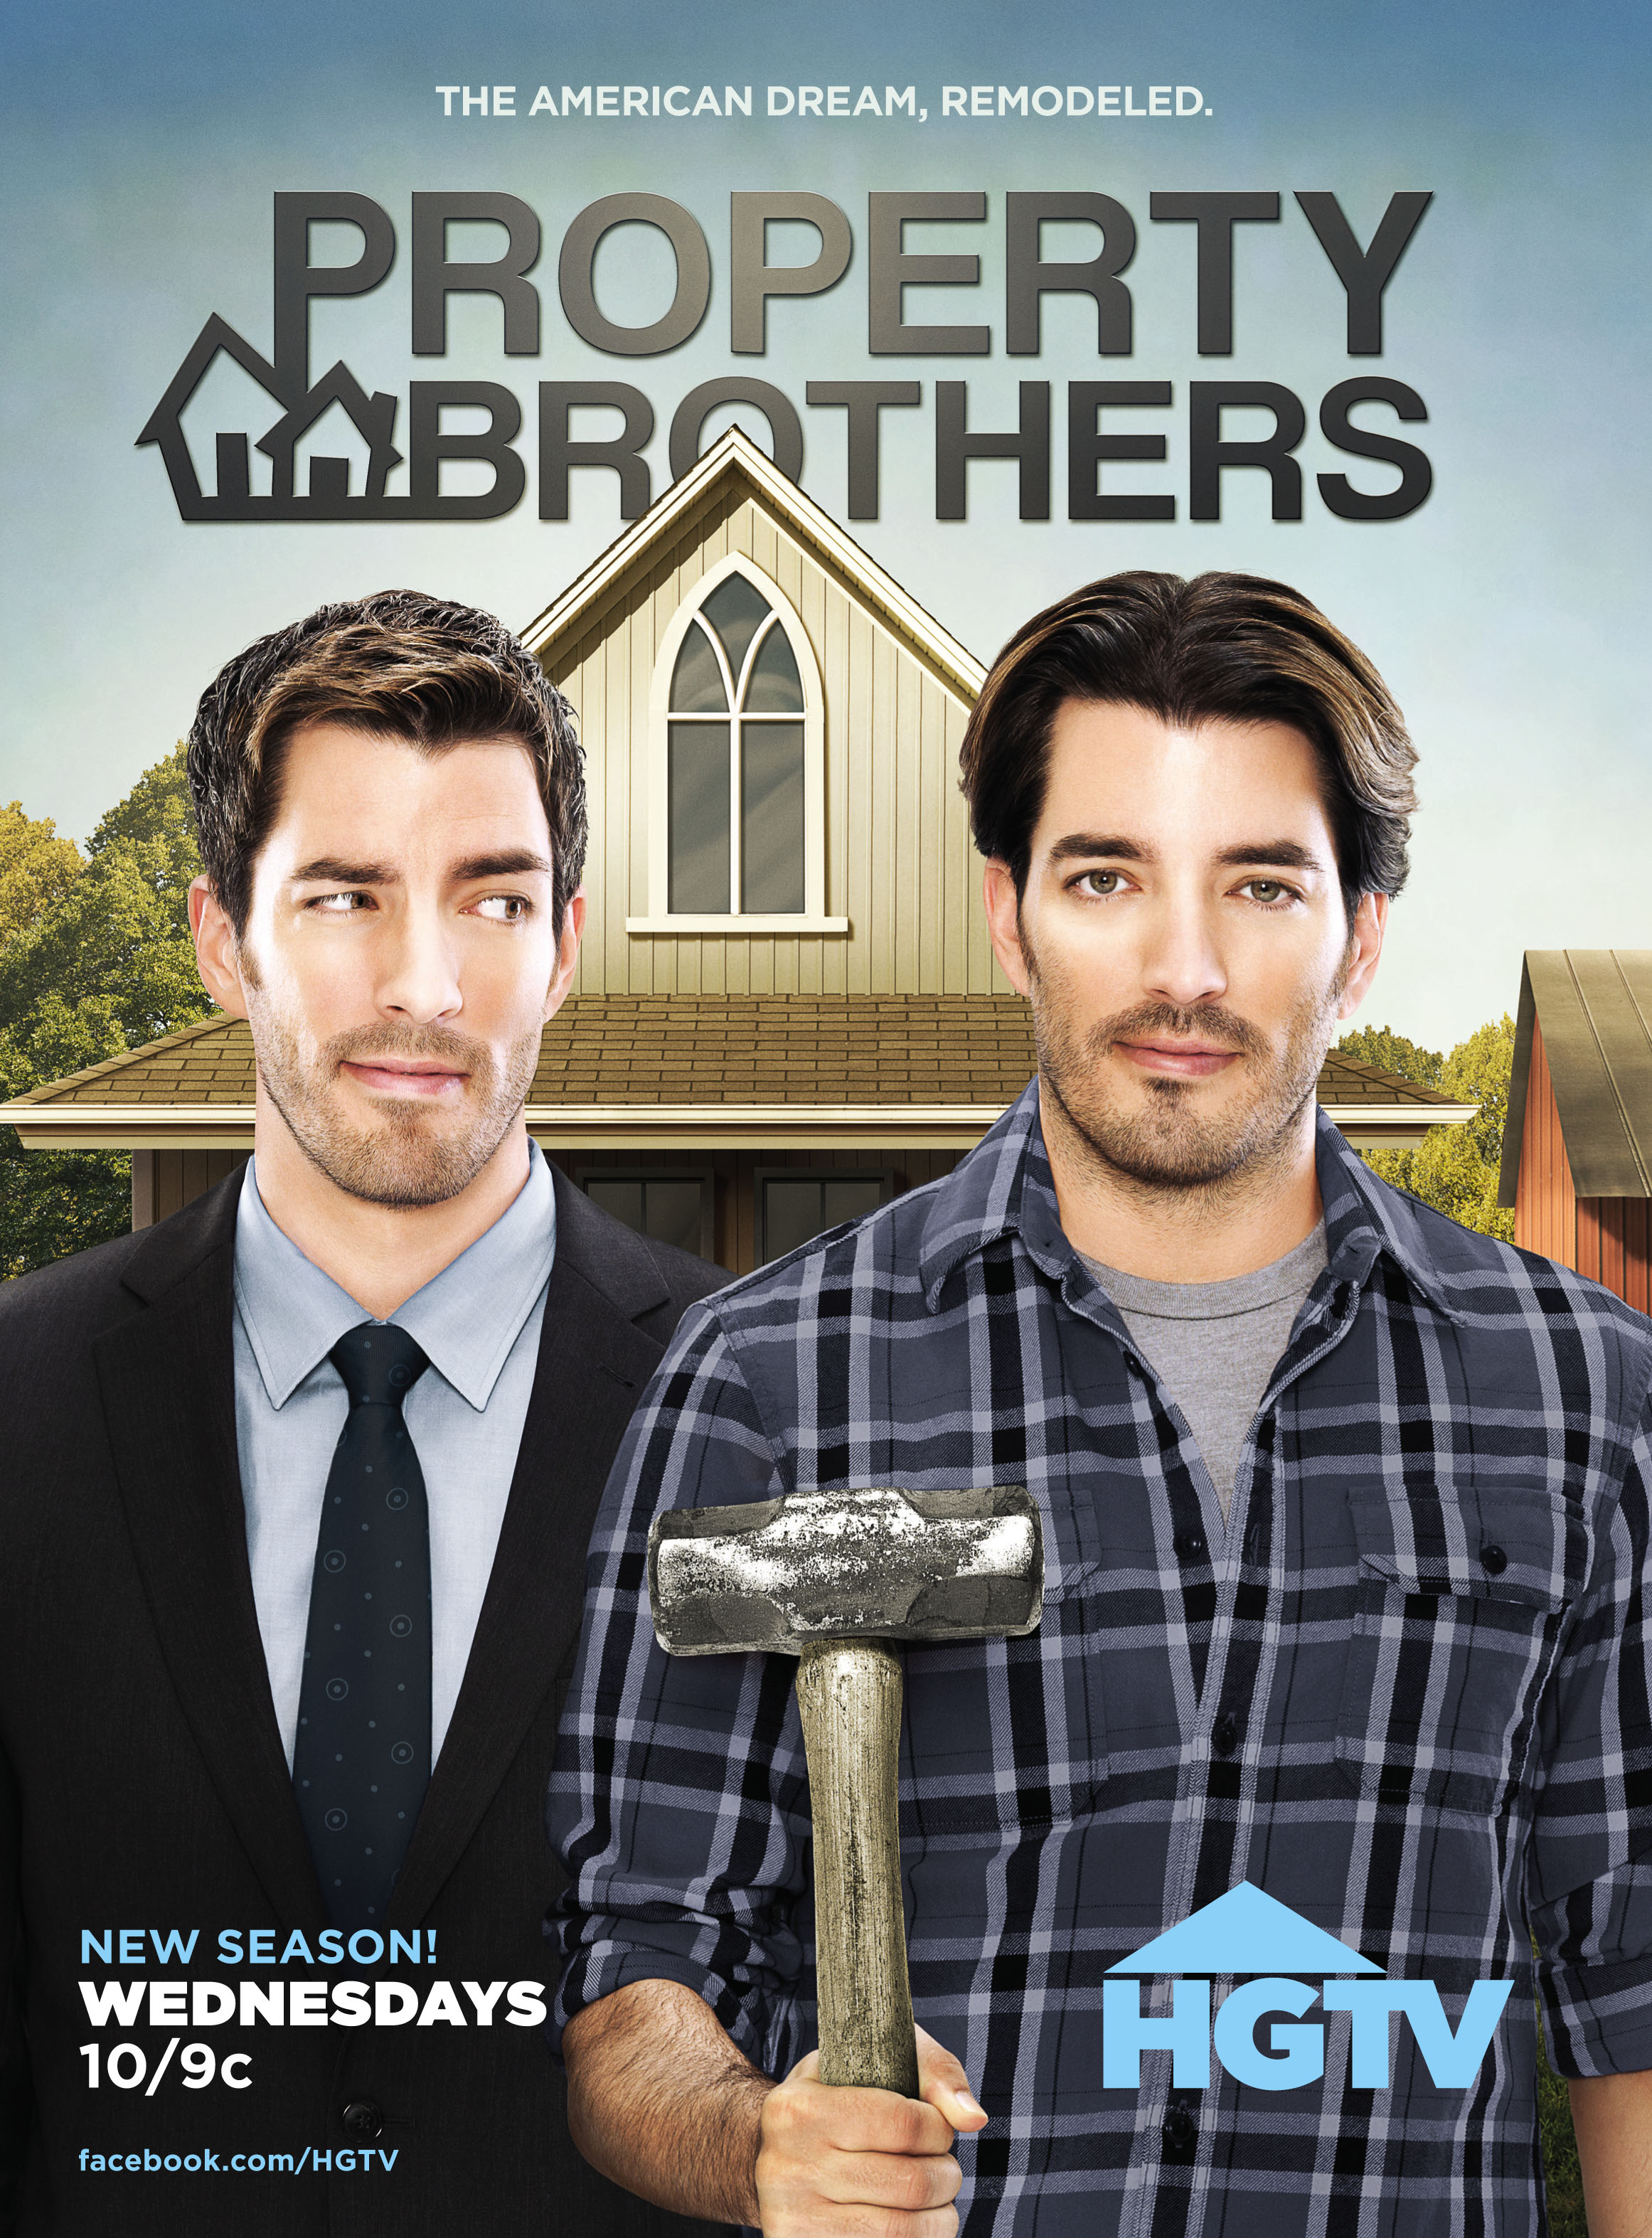 Property Brothers Tv Shows I Like Pinterest: who are the property brothers